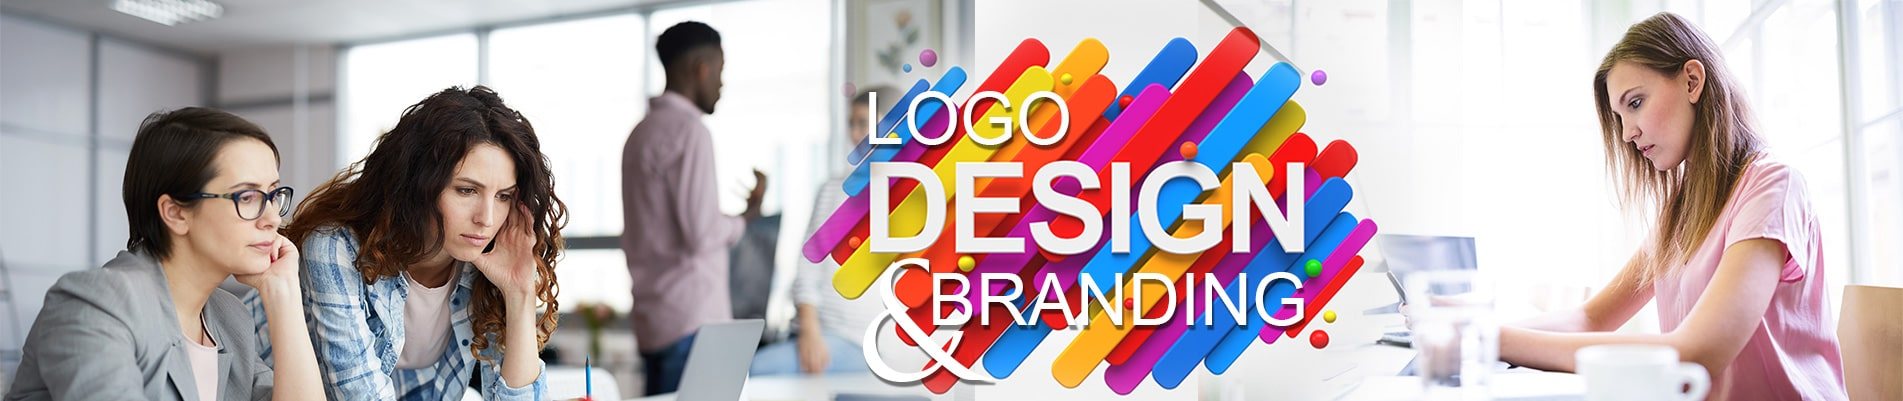 Flat Rate Logo Design Agency in Tallahassee FL